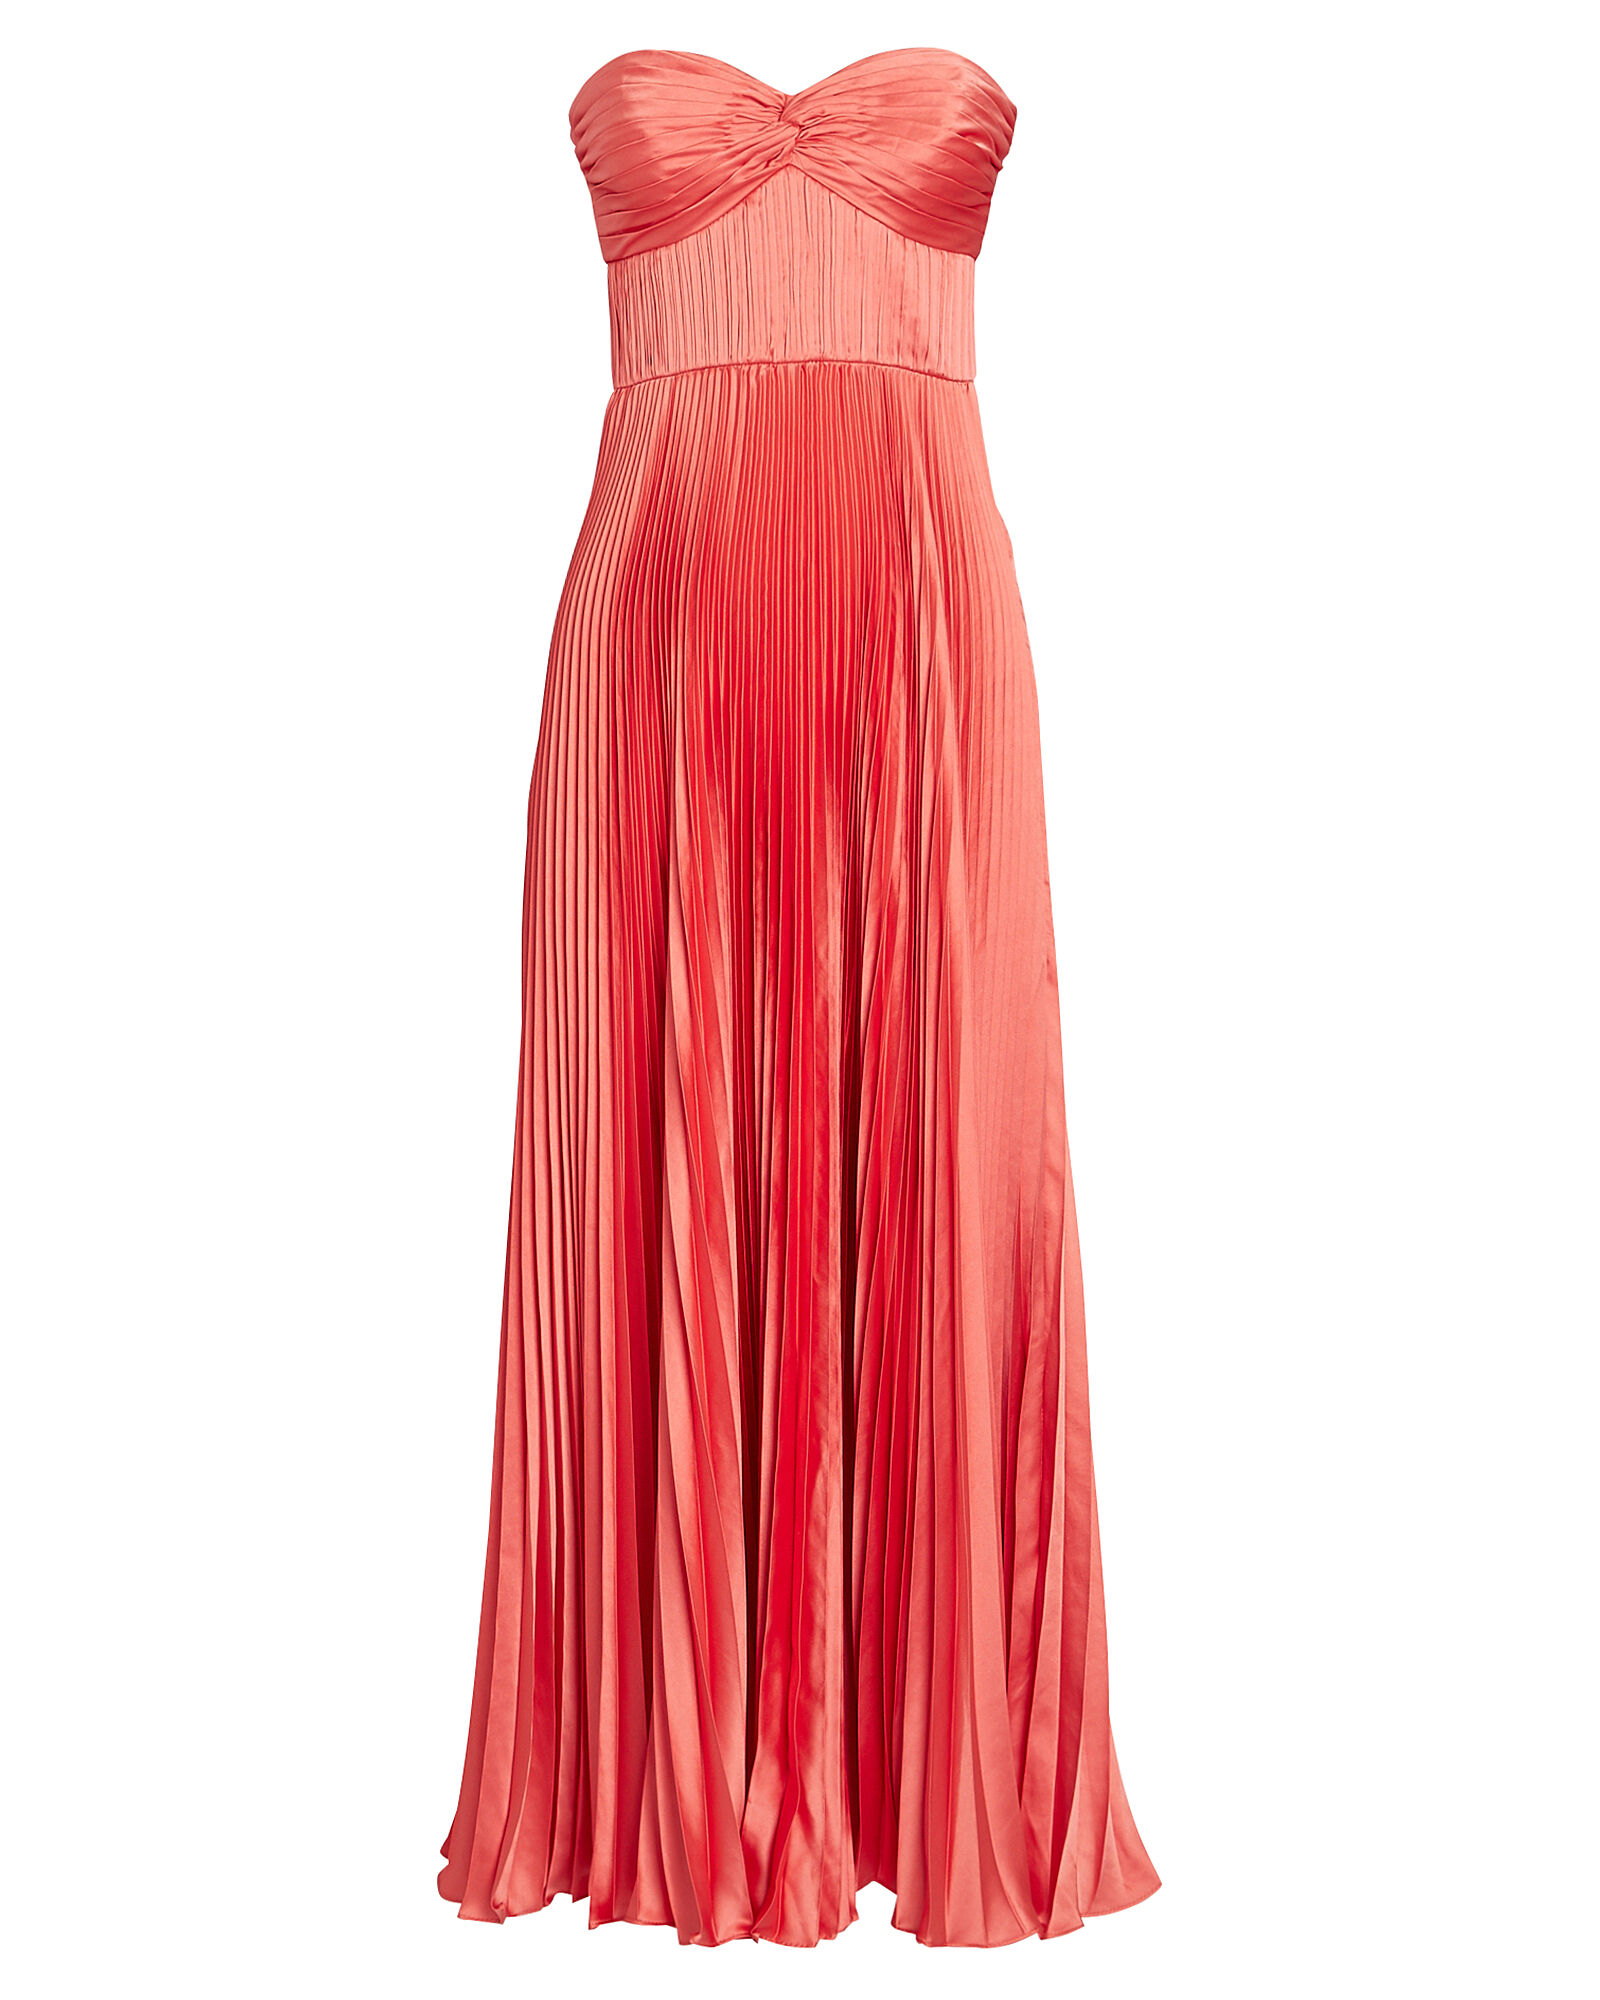 Belle Strapless Pleated Satin Dress, CORAL, hi-res